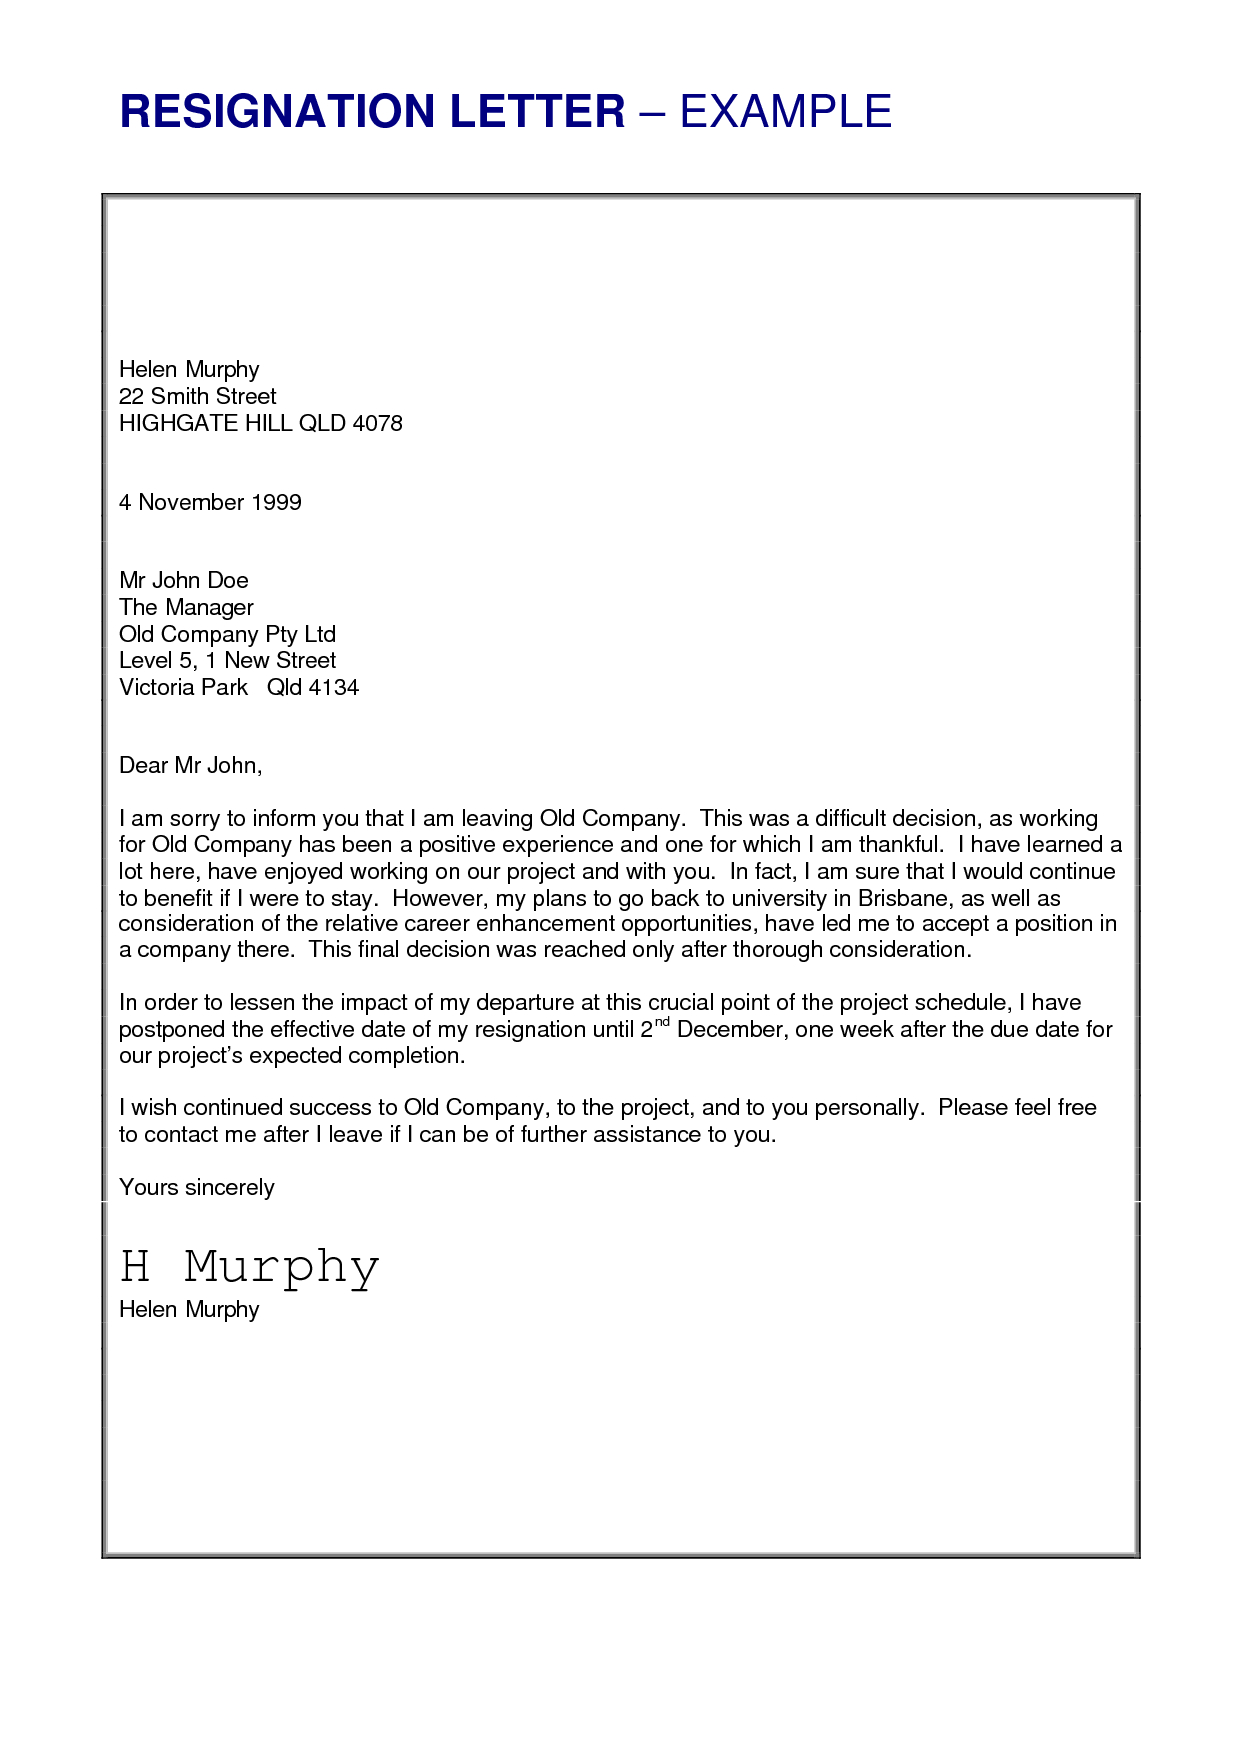 Writing A Resignation Letter Template - Job Resignation Letter Sample Loganun Blog Job